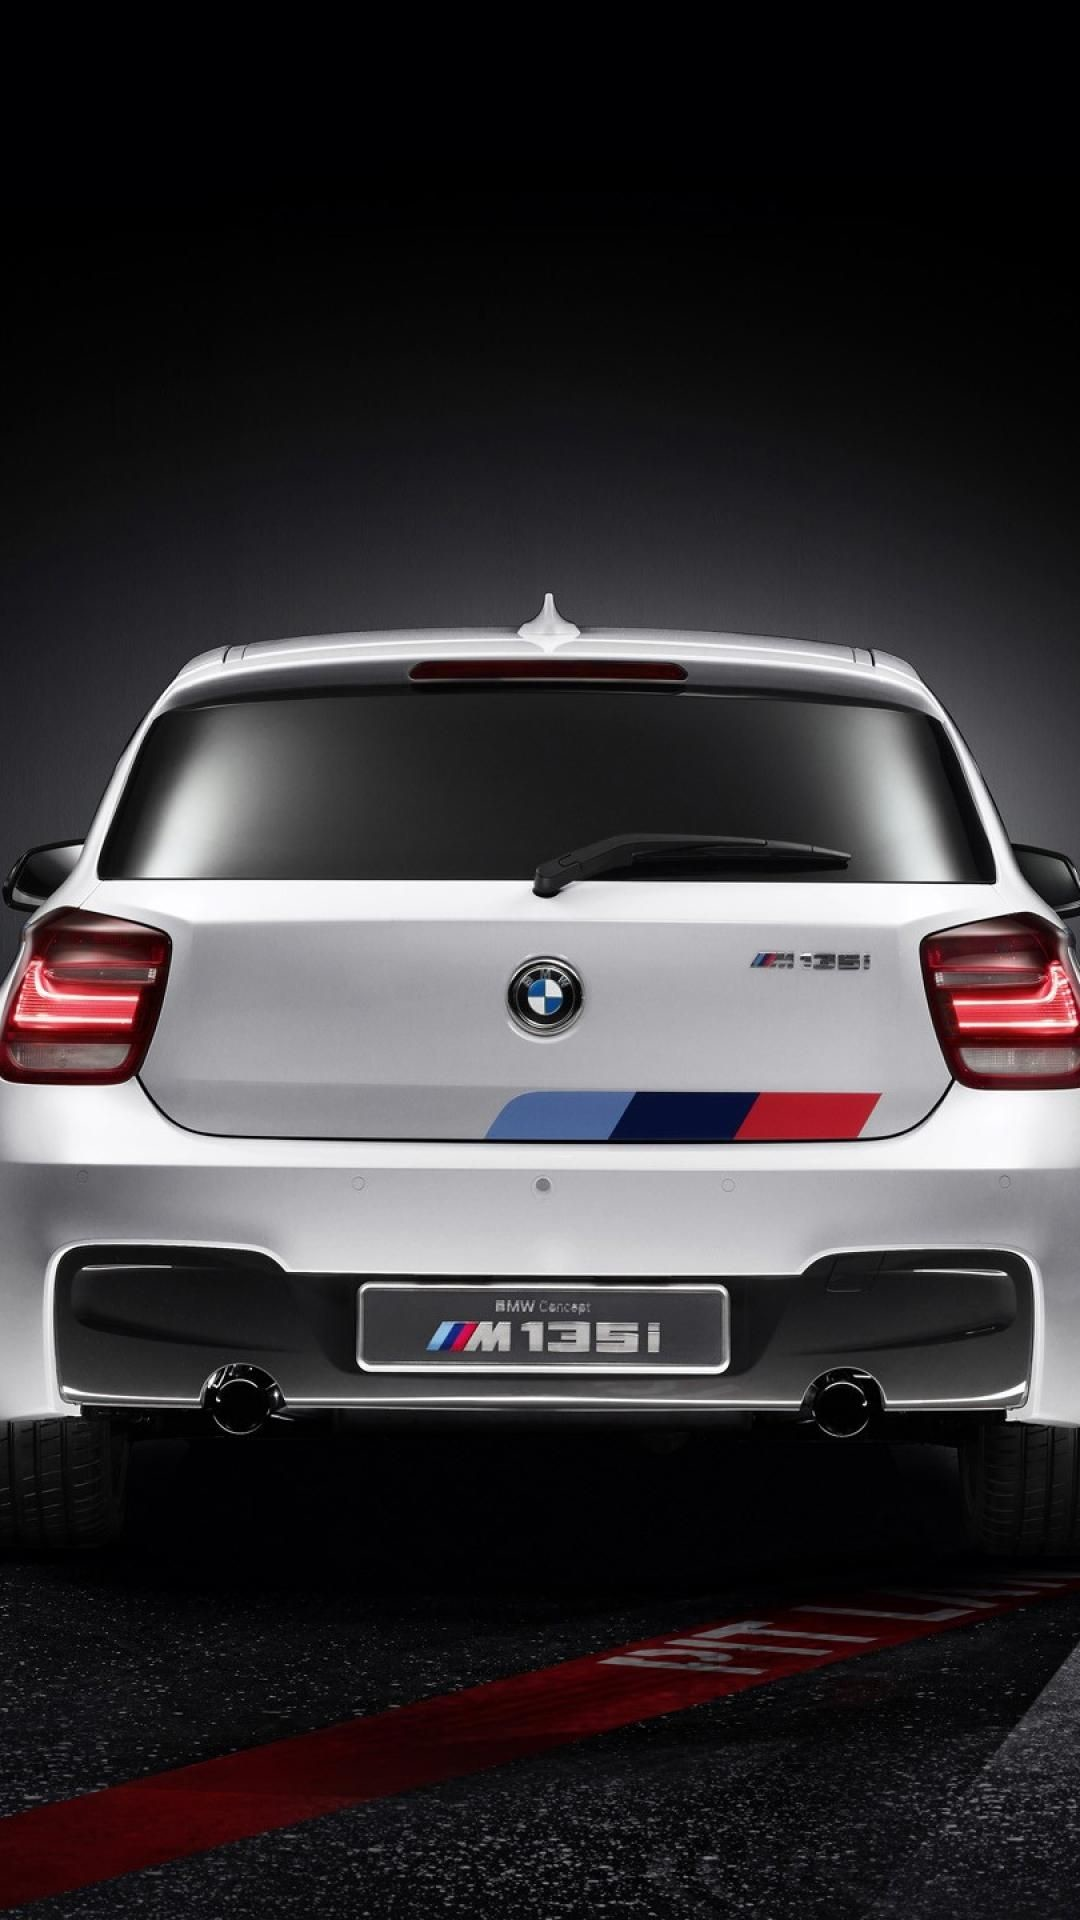 Res: 1080x1920, Bmw Series Hd Wallpaper Auto Galerij